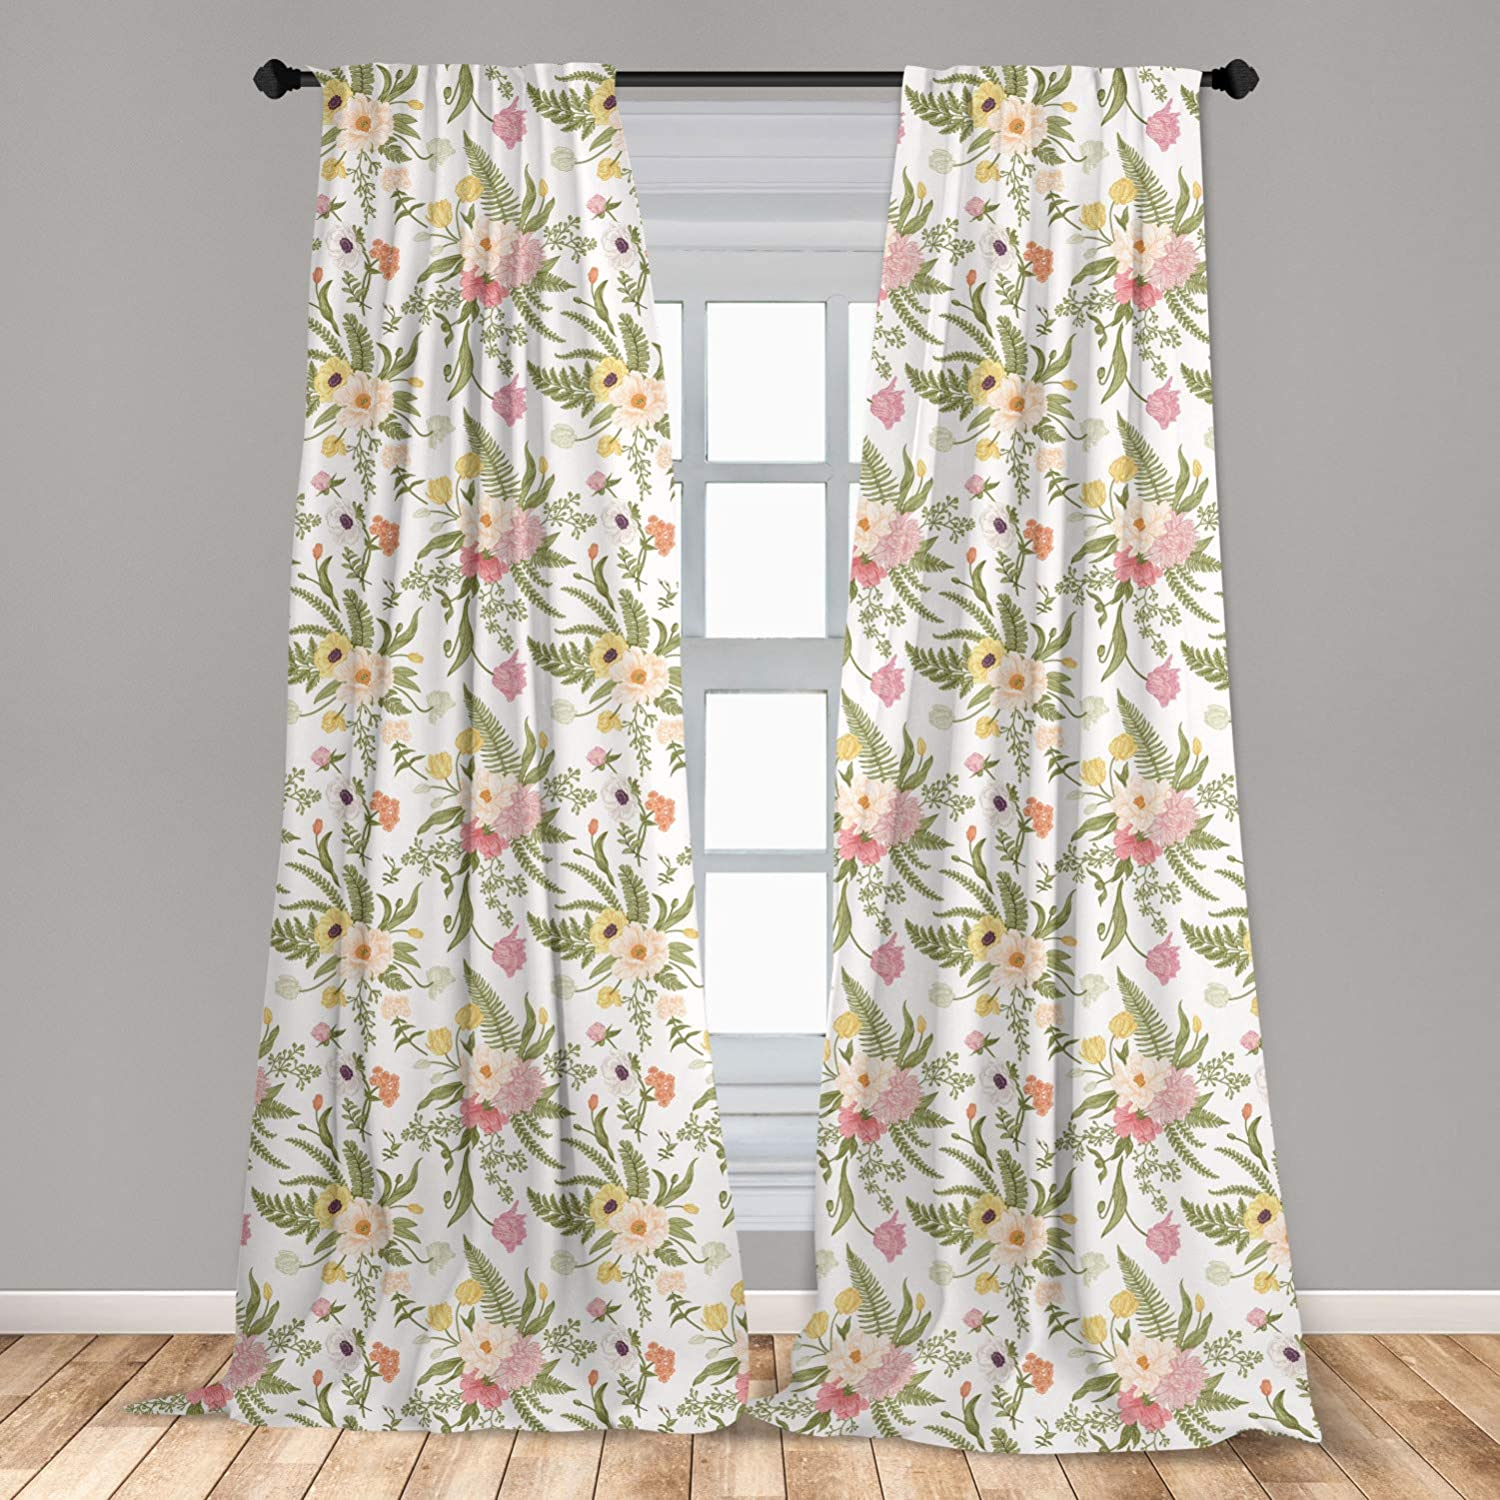 Ambesonne English Garden Curtains, Repetitive Floral Pattern with Vintage Different Flowers Bouquet, Window Treatments 2 Panel Set for Living Room Bedroom Decor, 56